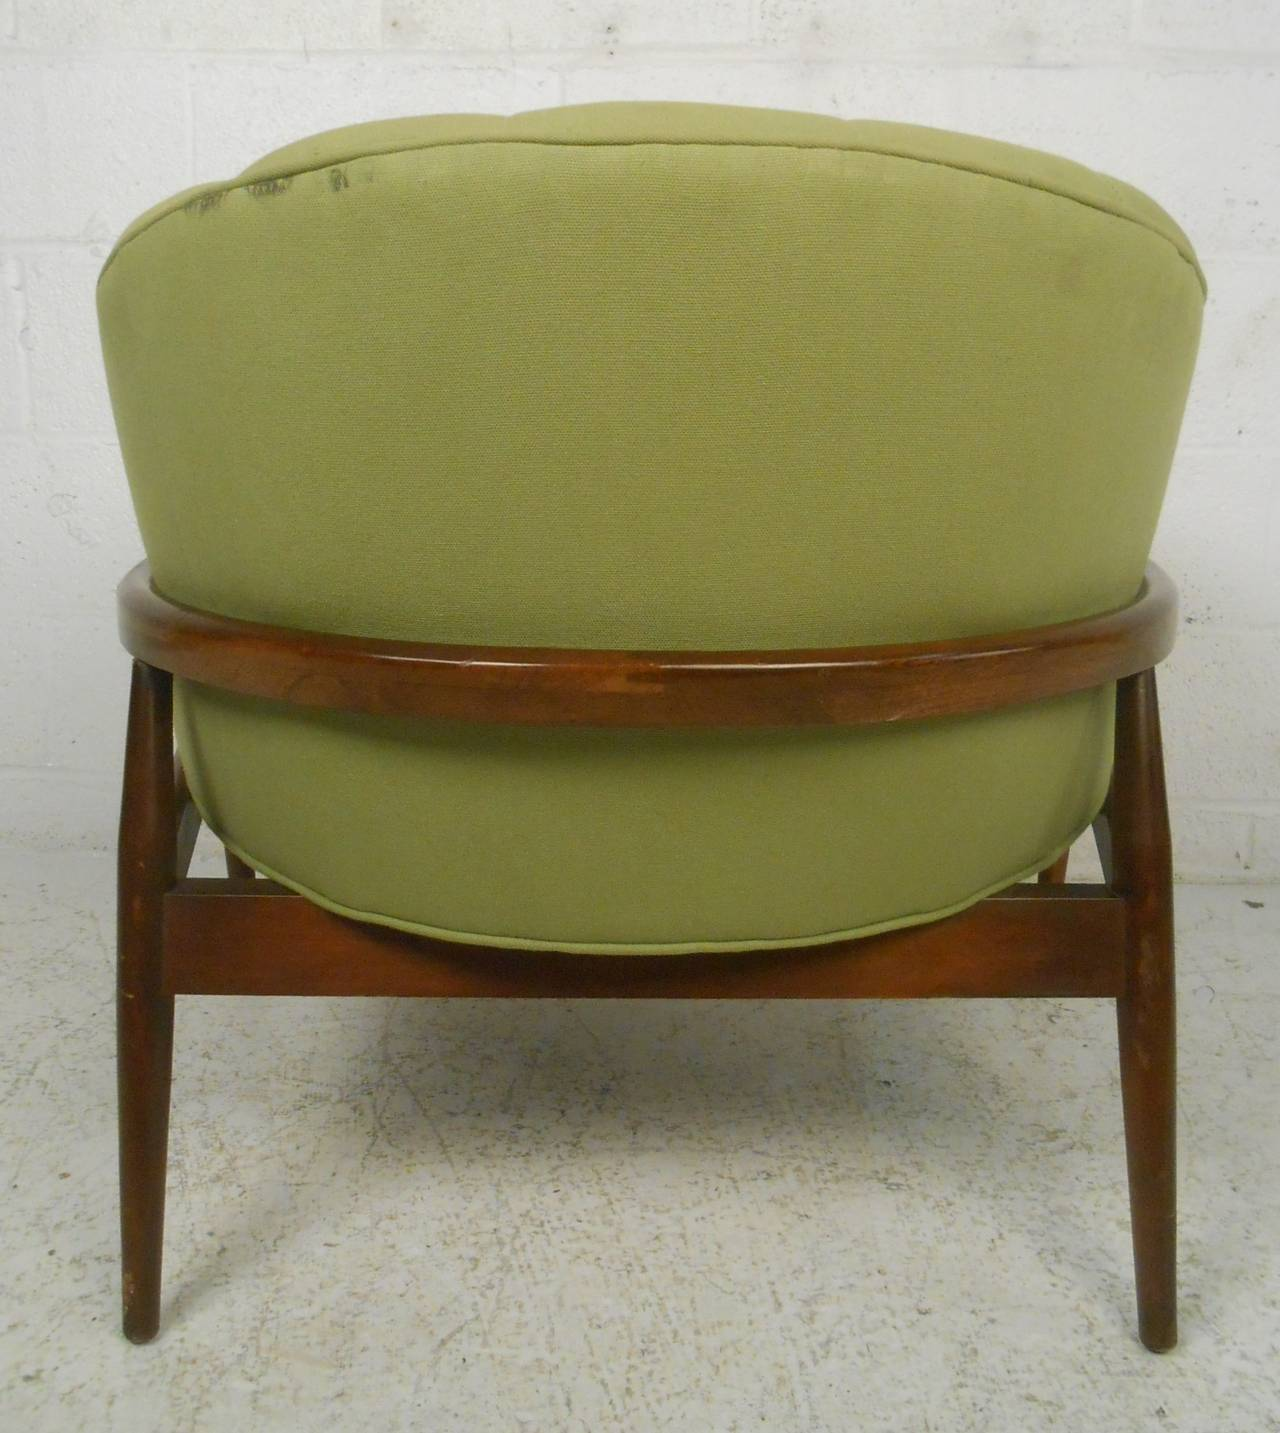 American Stylish Mid-Century Modern Tufted Lounge Chair For Sale